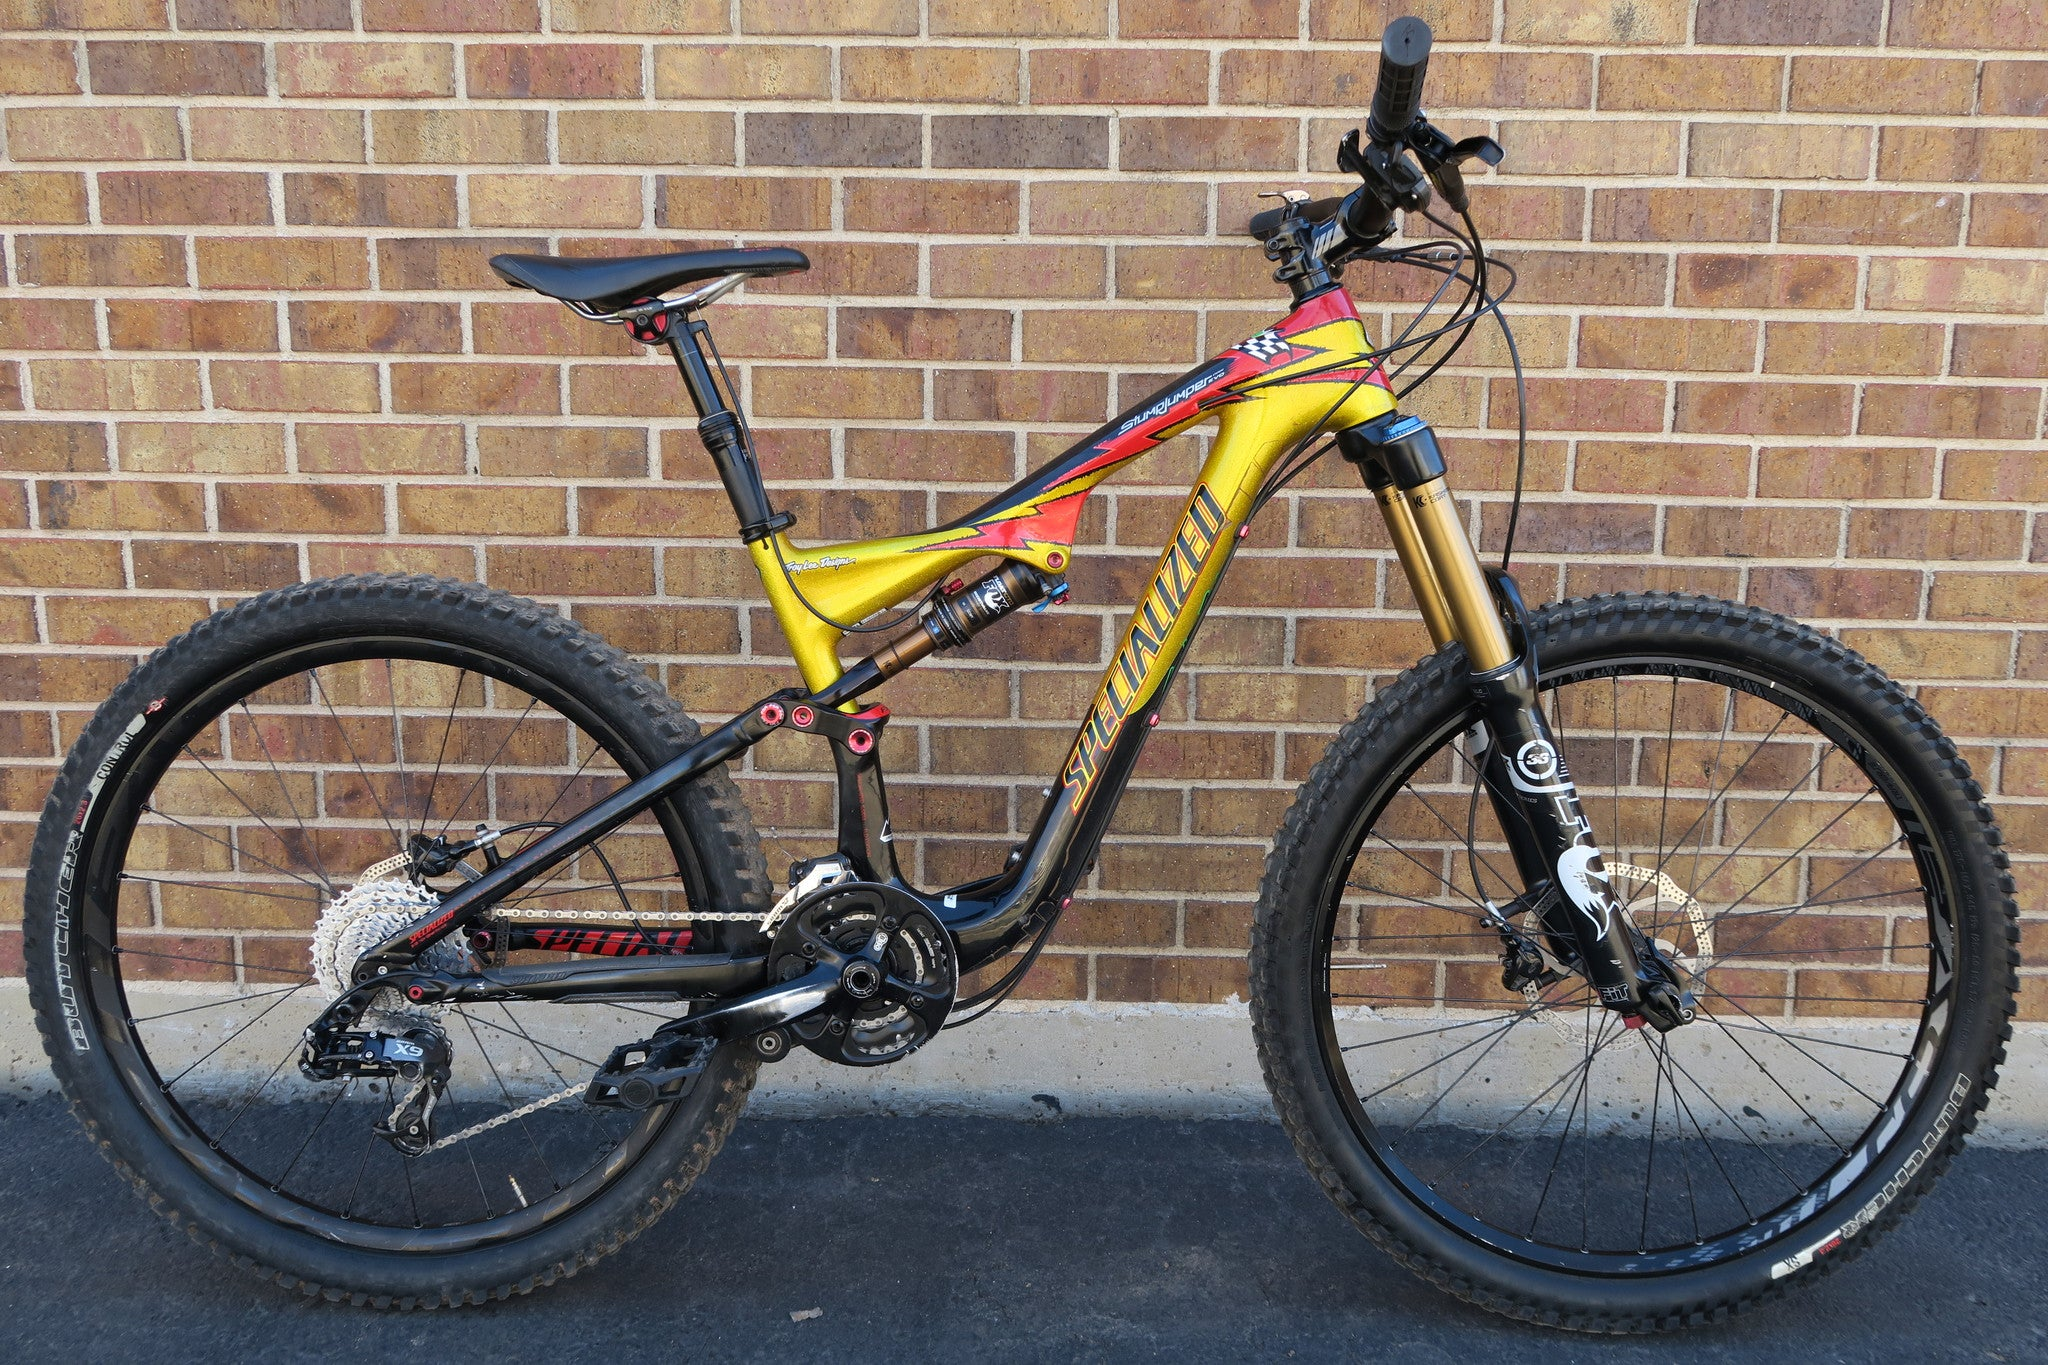 2013 SPECIALIZED STUMPJUMPER EXPERT EVO TROY LEE EDITION